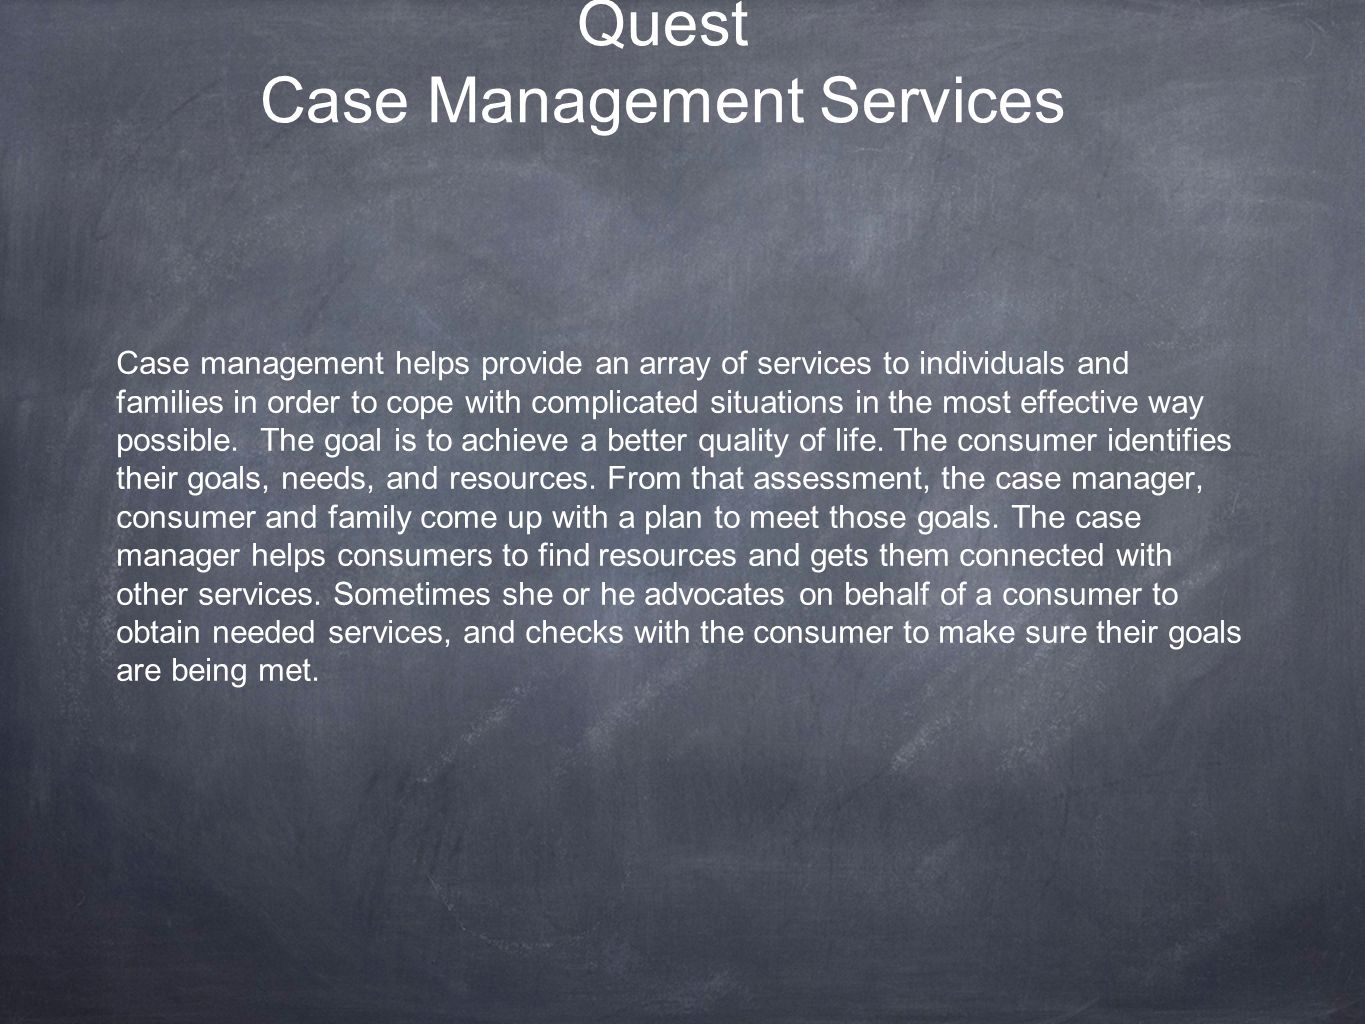 Quest Case Management Services Case management helps provide an array of services to individuals and families in order to cope with complicated situat